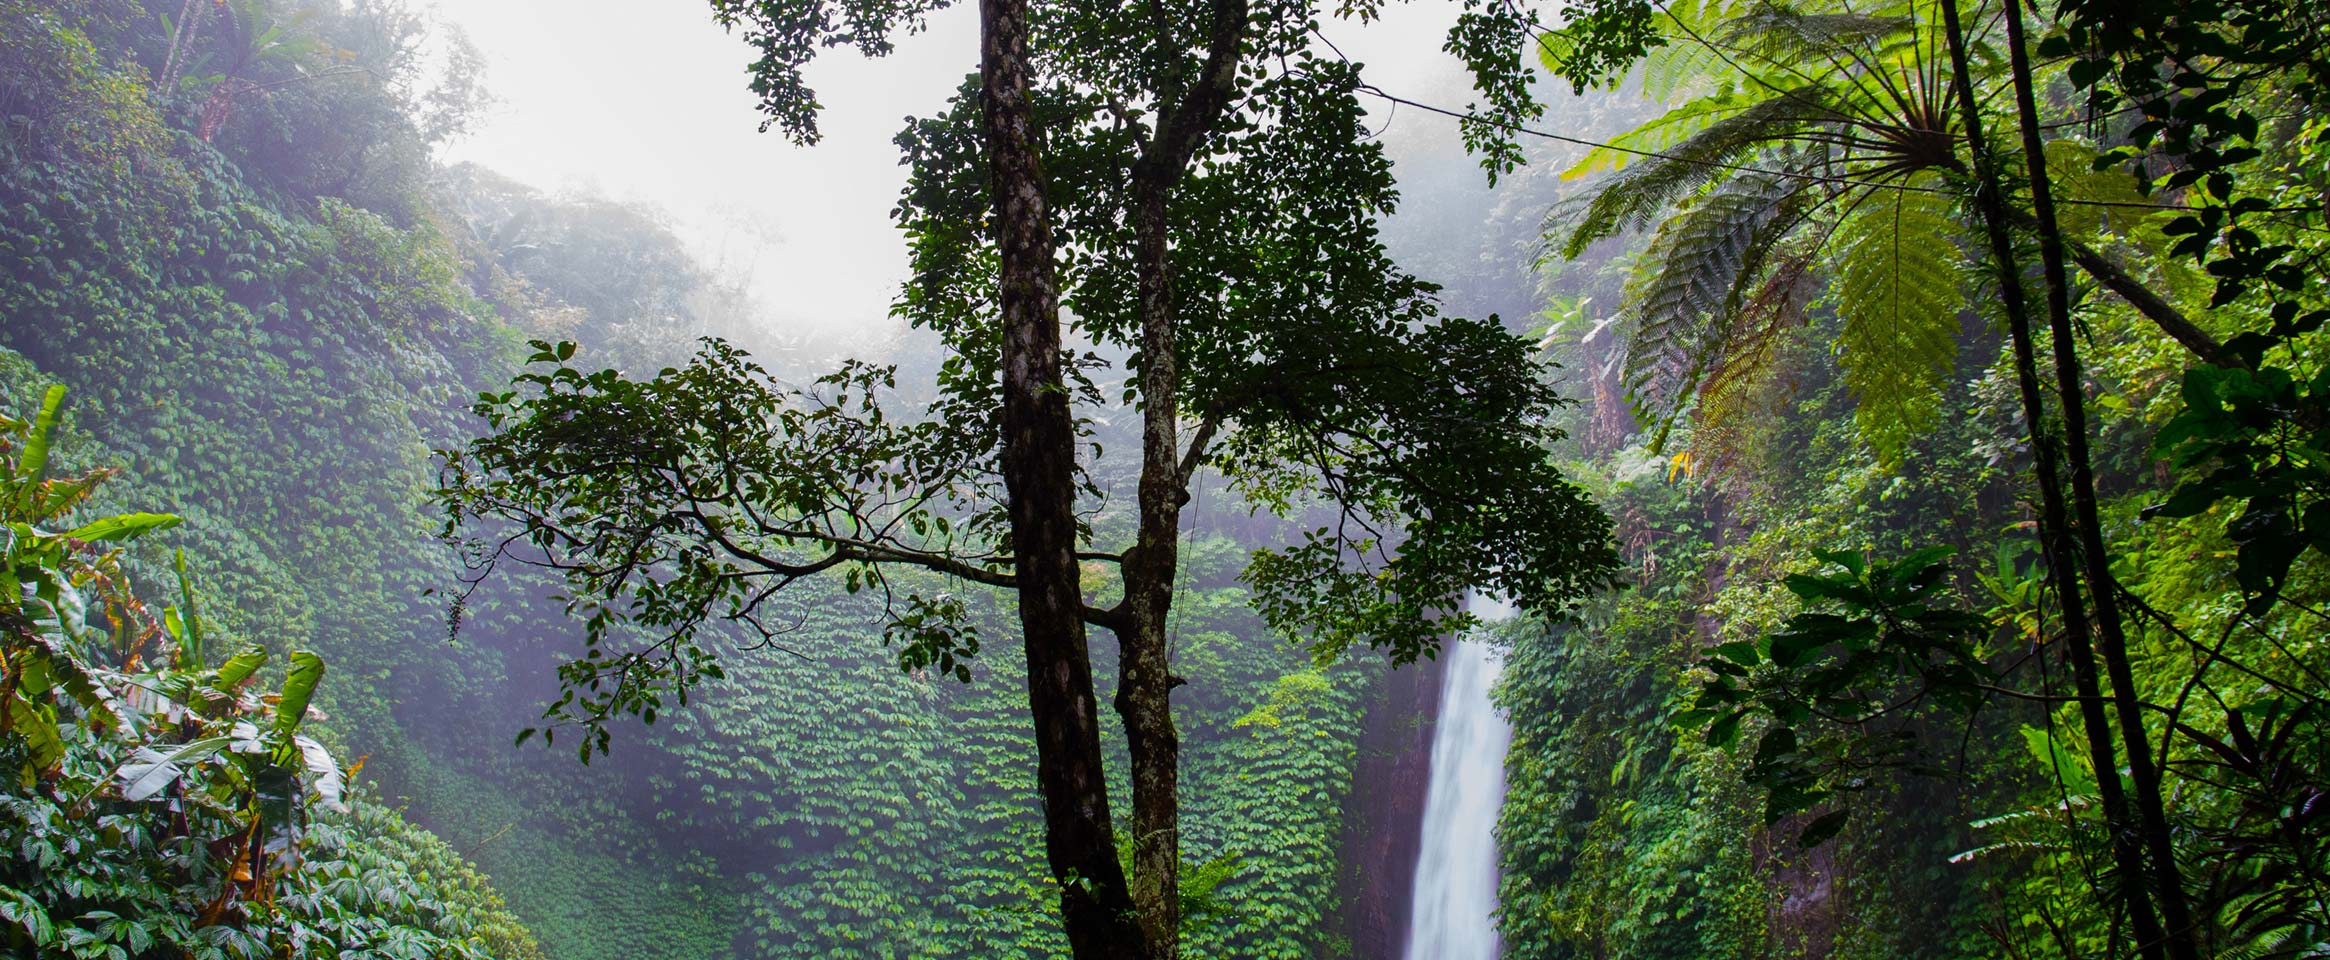 A tree in a clearing in the jungle, with a waterfall behind it and a grey, foggy sky.